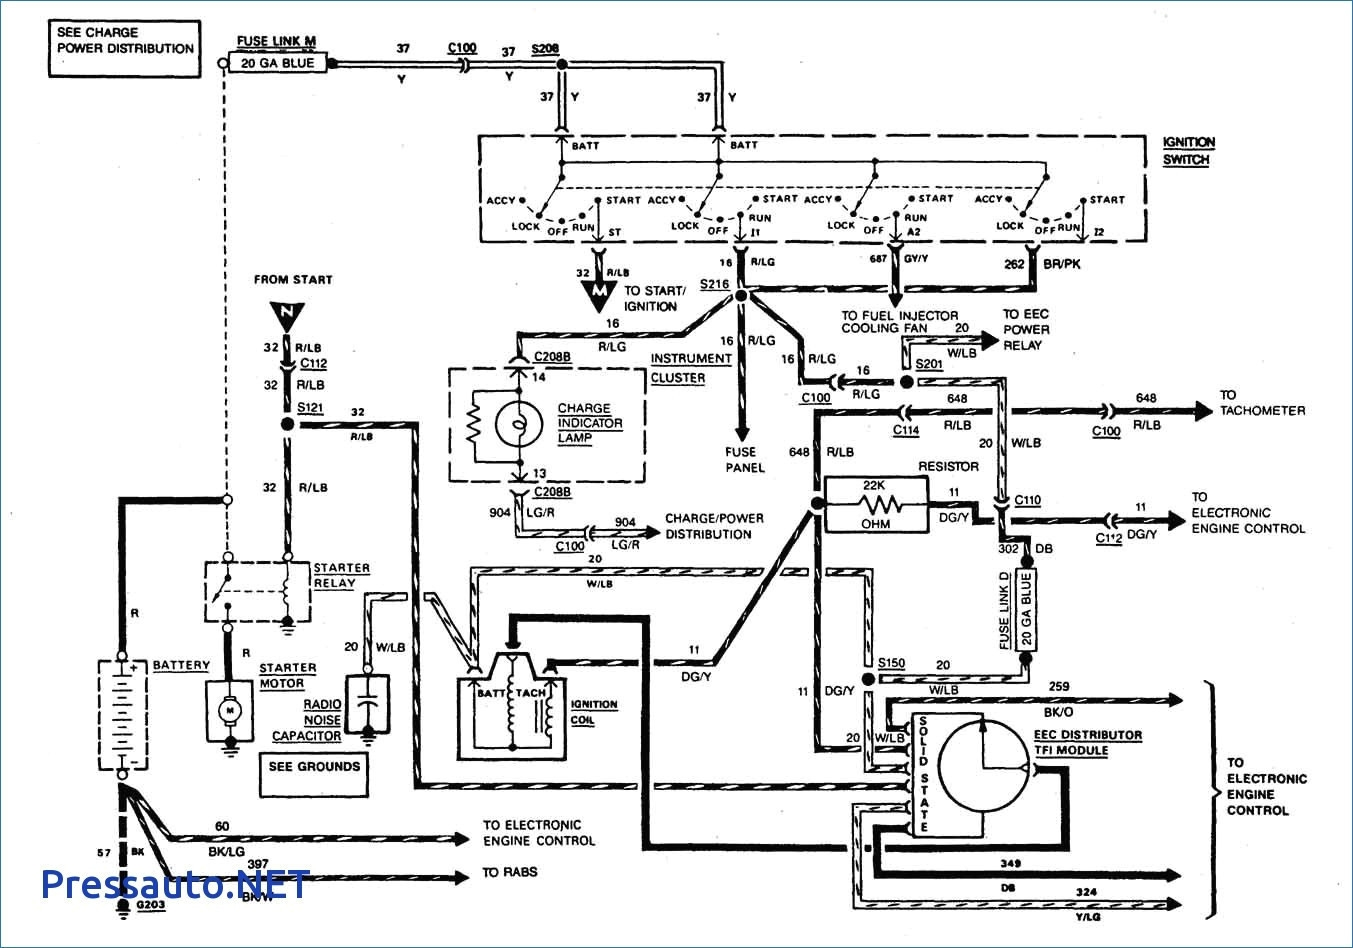 1995 mazda b2300 fuel system wiring diagram free download jacobs ignition system wiring diagram free download 1989 ford f150 ignition wiring diagram | free wiring diagram